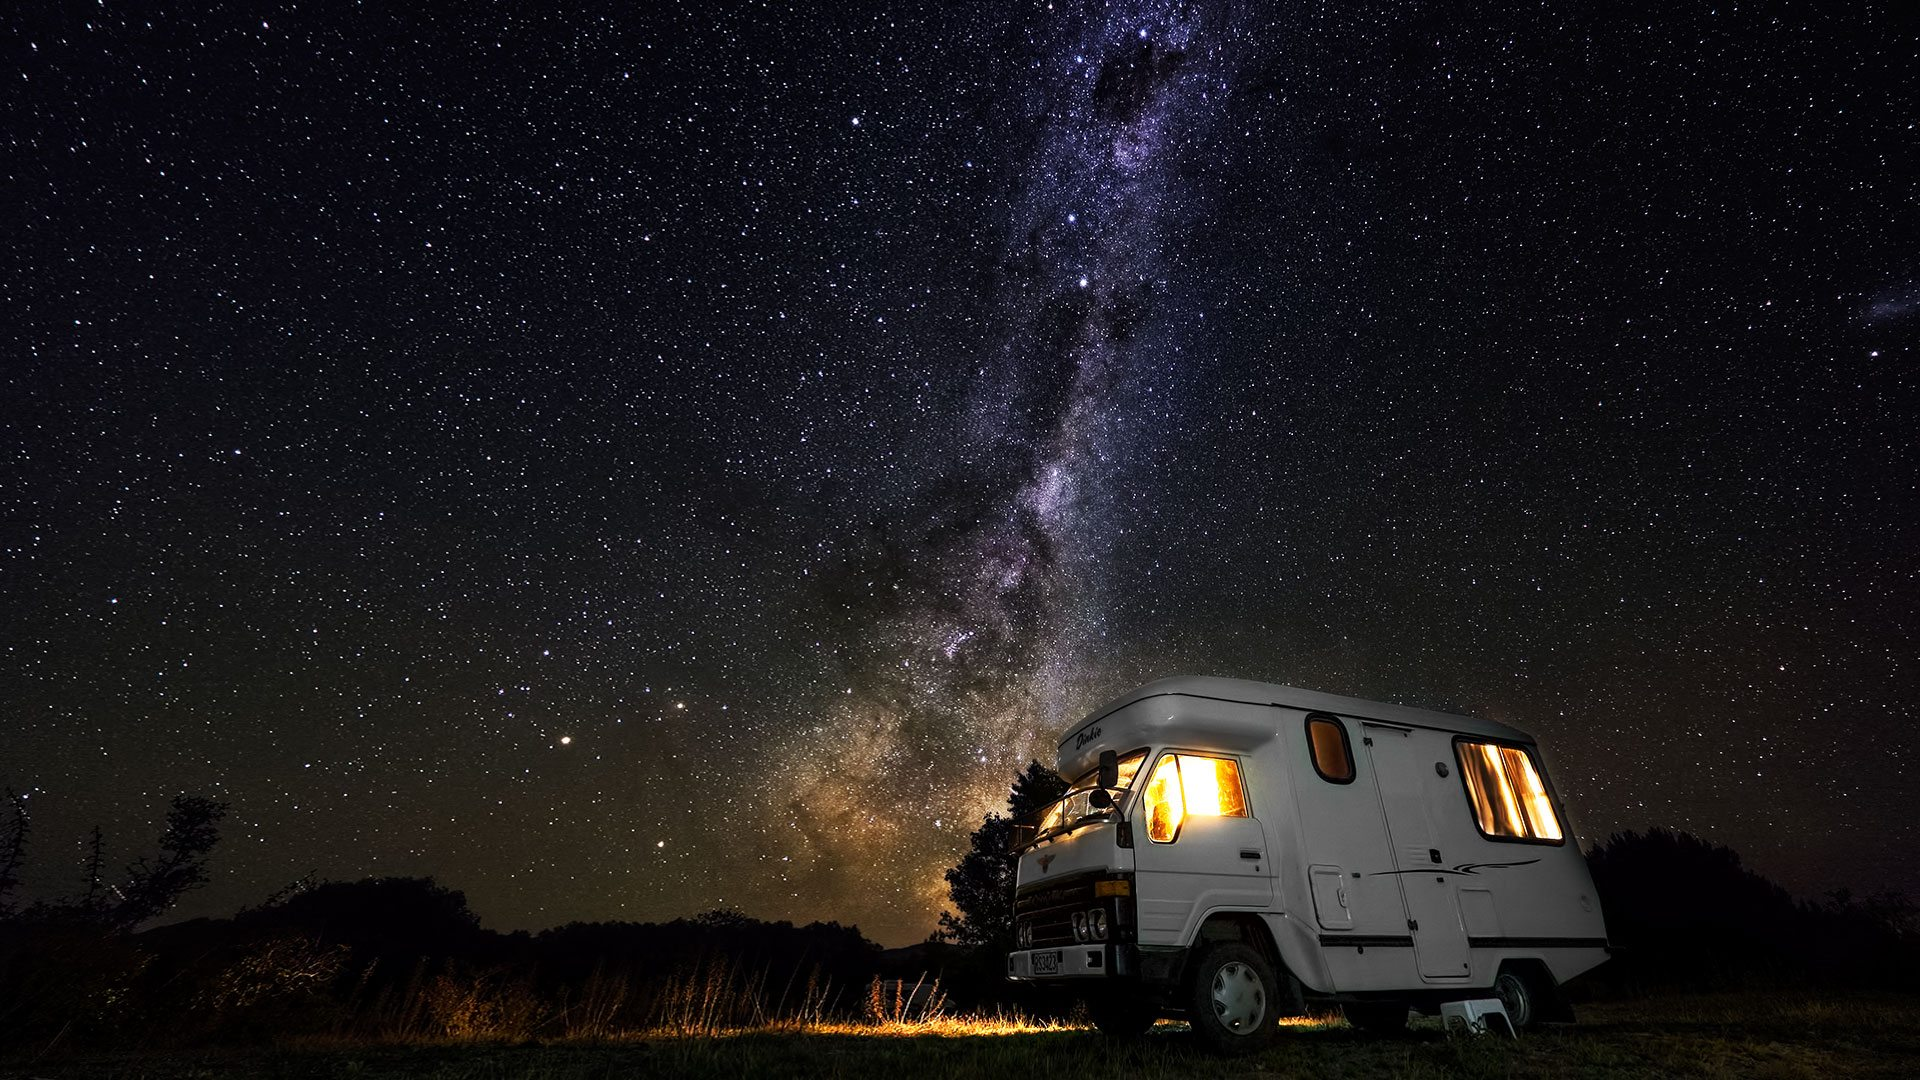 Camping under the stars, Lake Tekapo, New Zealand